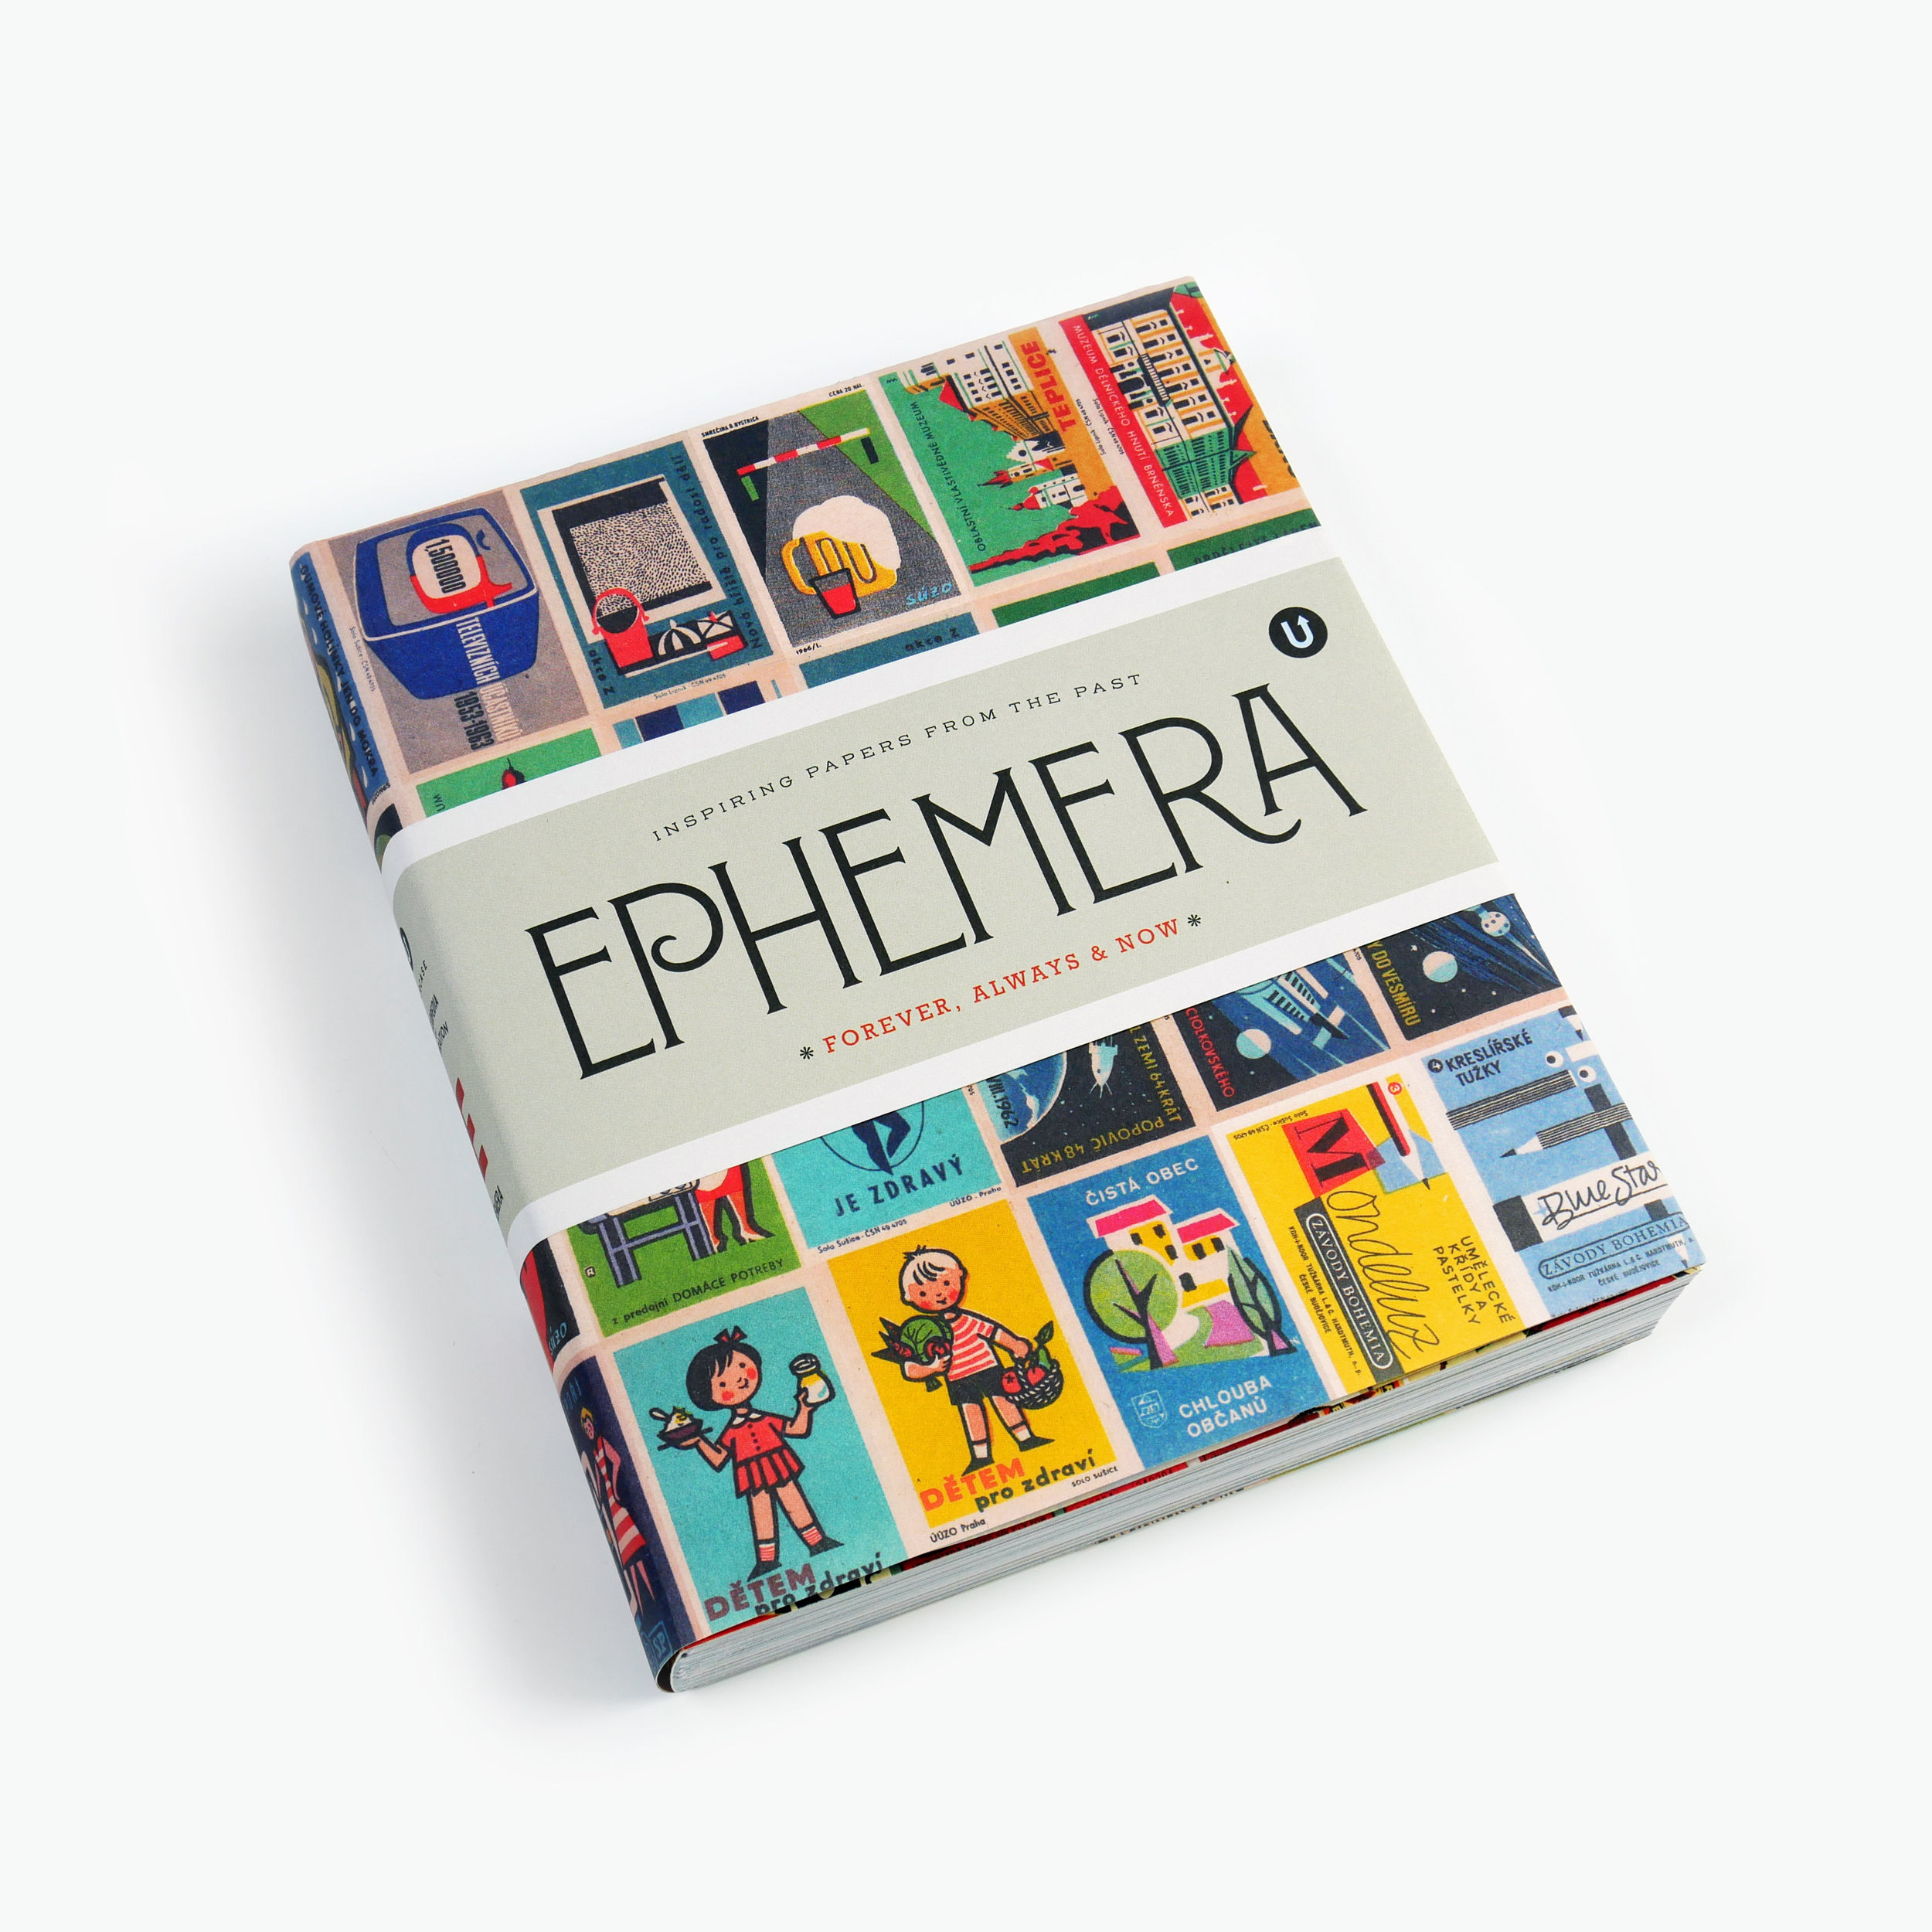 Ephemera-cover-03.JPG